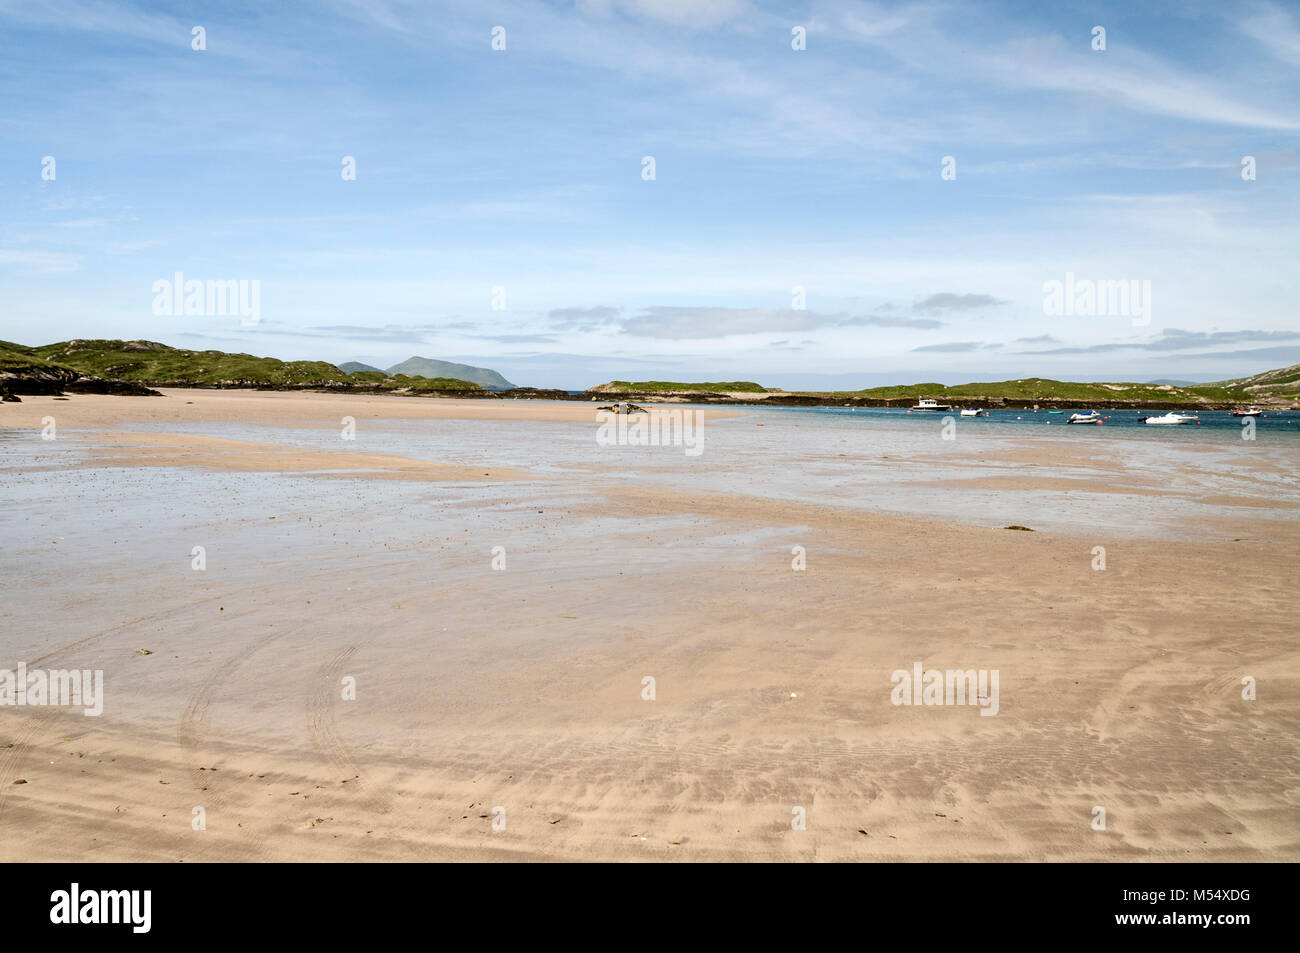 Derrynane beach on the Ring of Kerry in Southern Ireland. - Stock Image